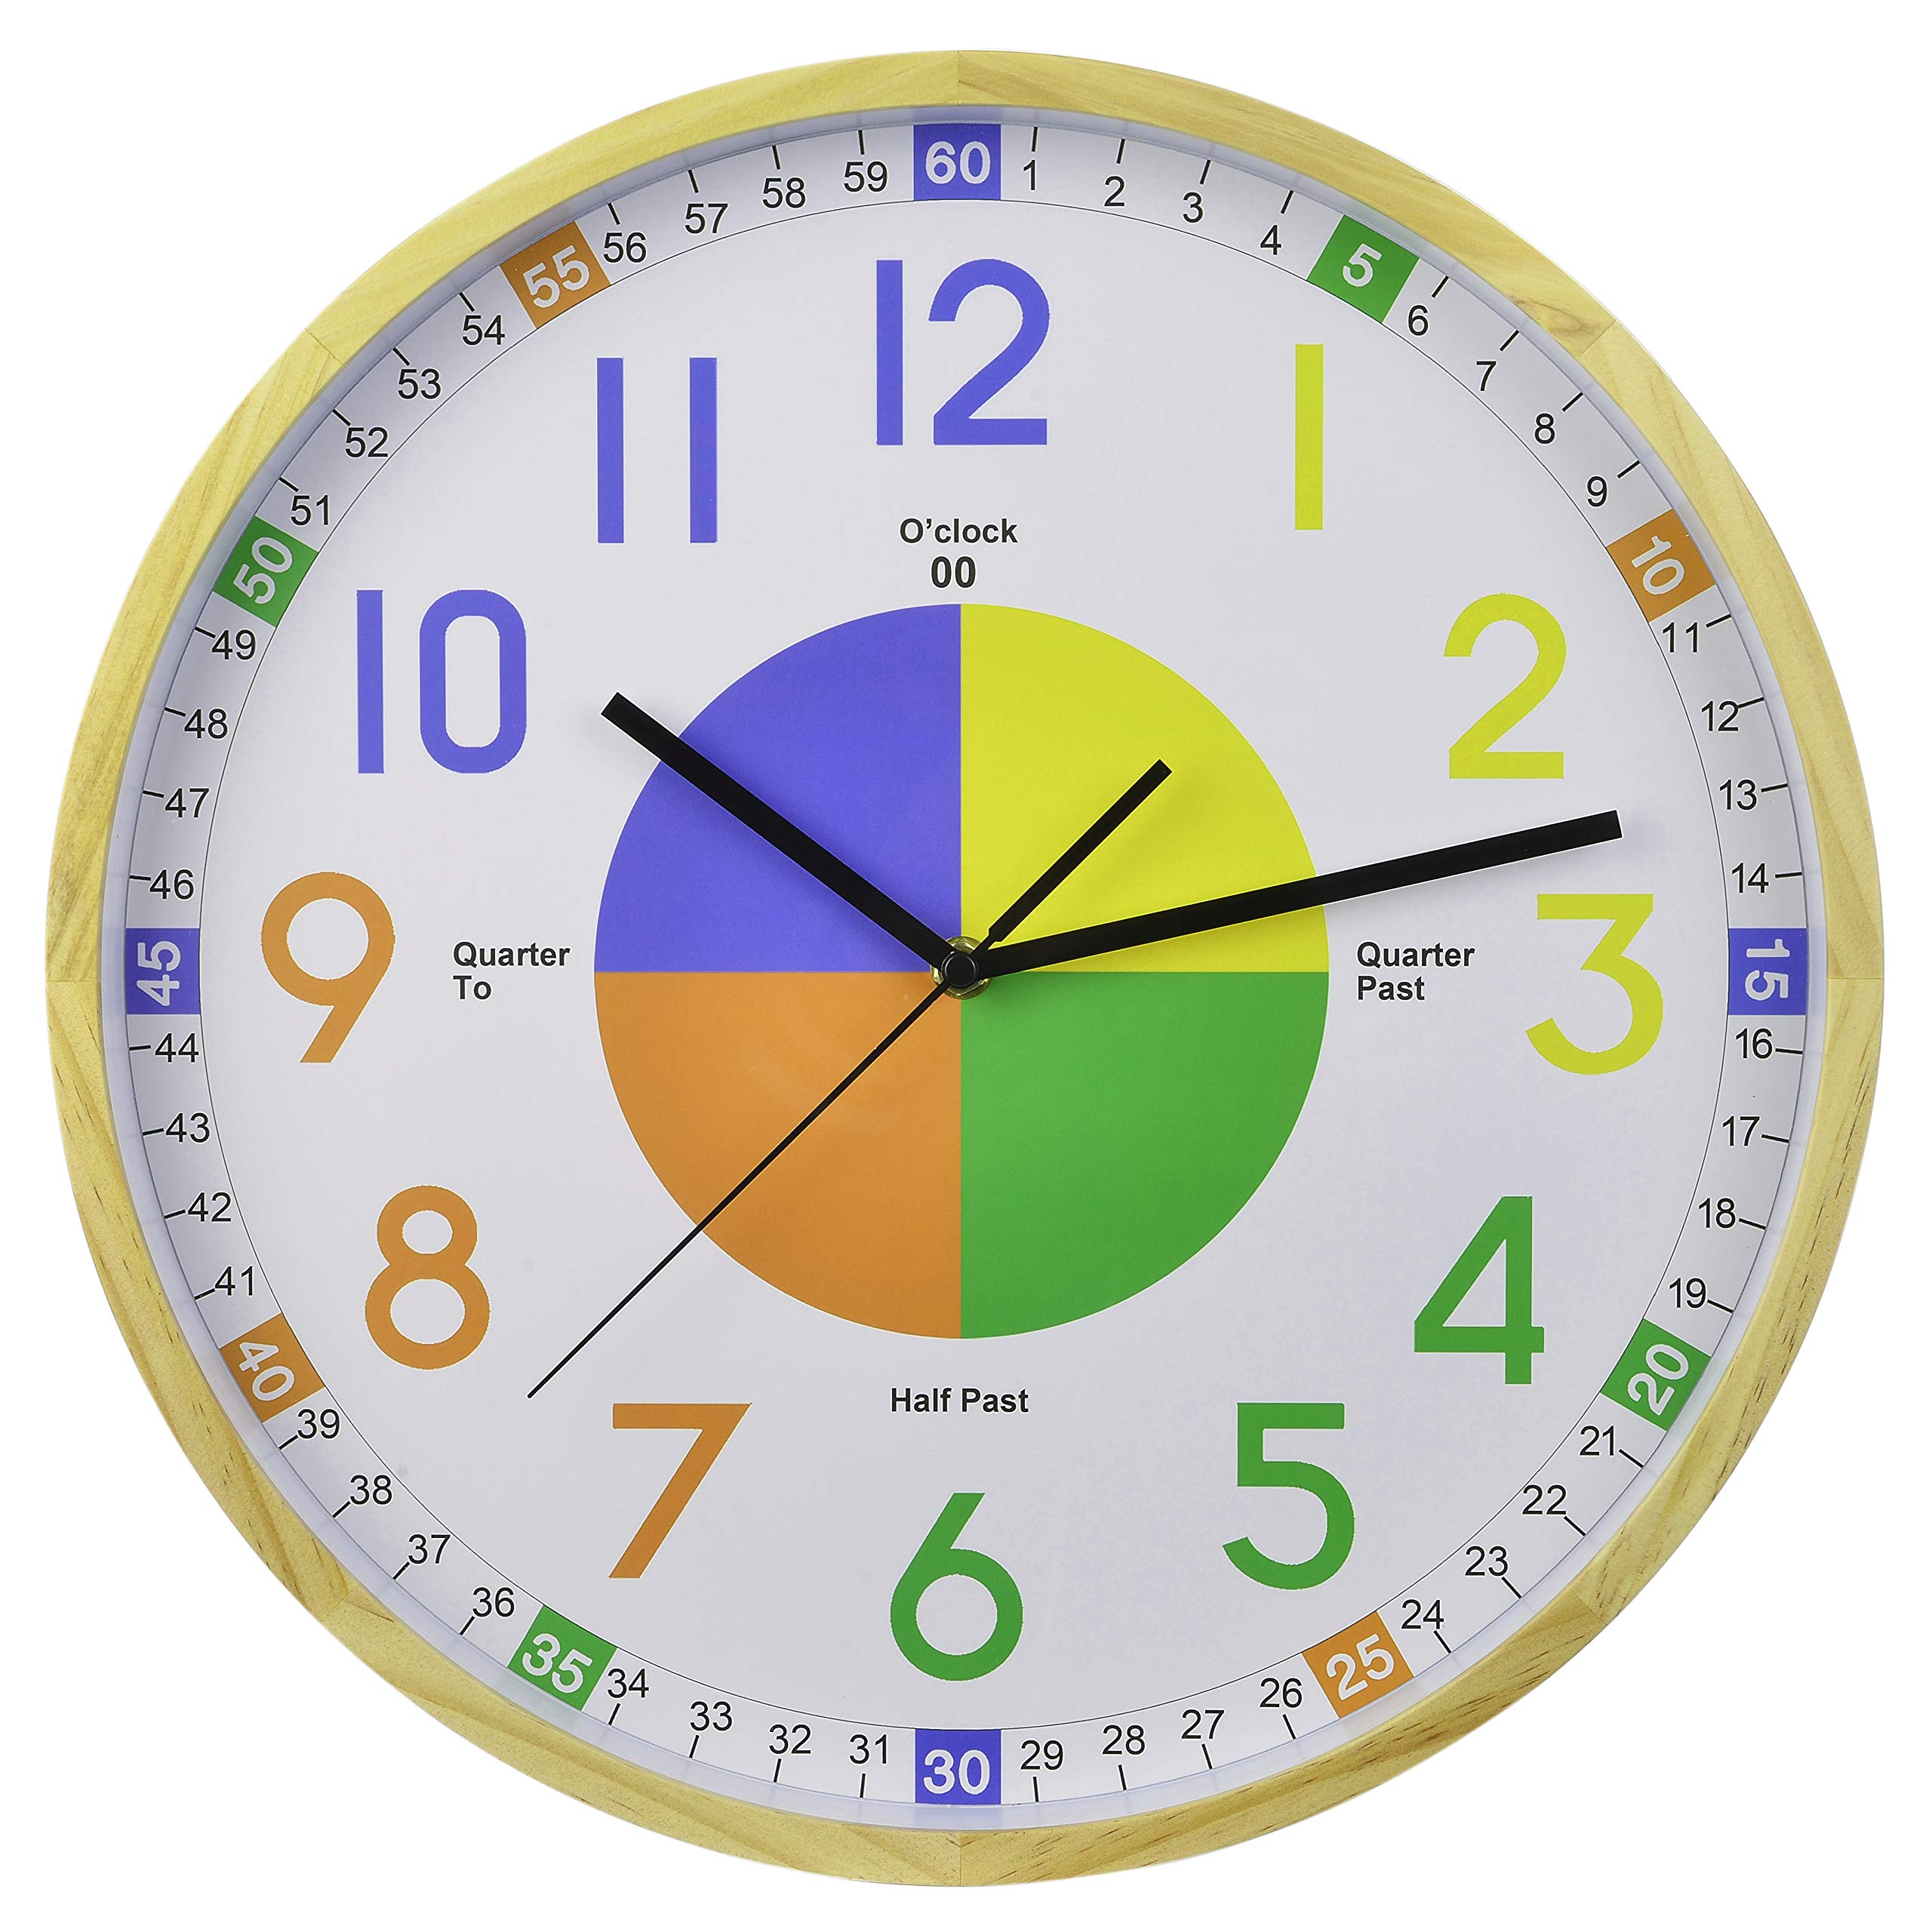 16-Inch Pine Frame Kids Learning Time Teaching Educational Wall Clock Colorful Large Decorative Silent Non-Ticking Battery Operated for Parents Teachers and Kids Bedroom Playroom Classroom by Old Oak